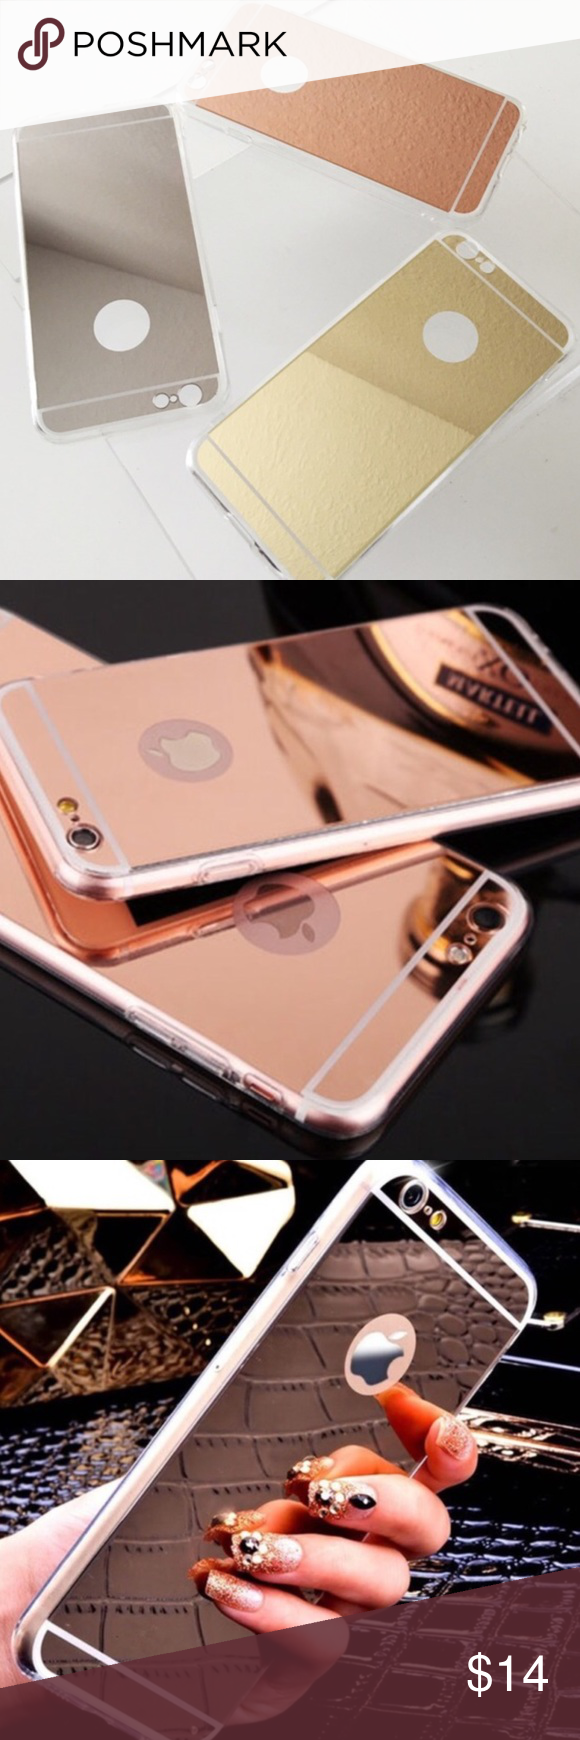 Mirror IPhone Case NEW! 3 colors available. Fashion Nova Accessories Phone Cases